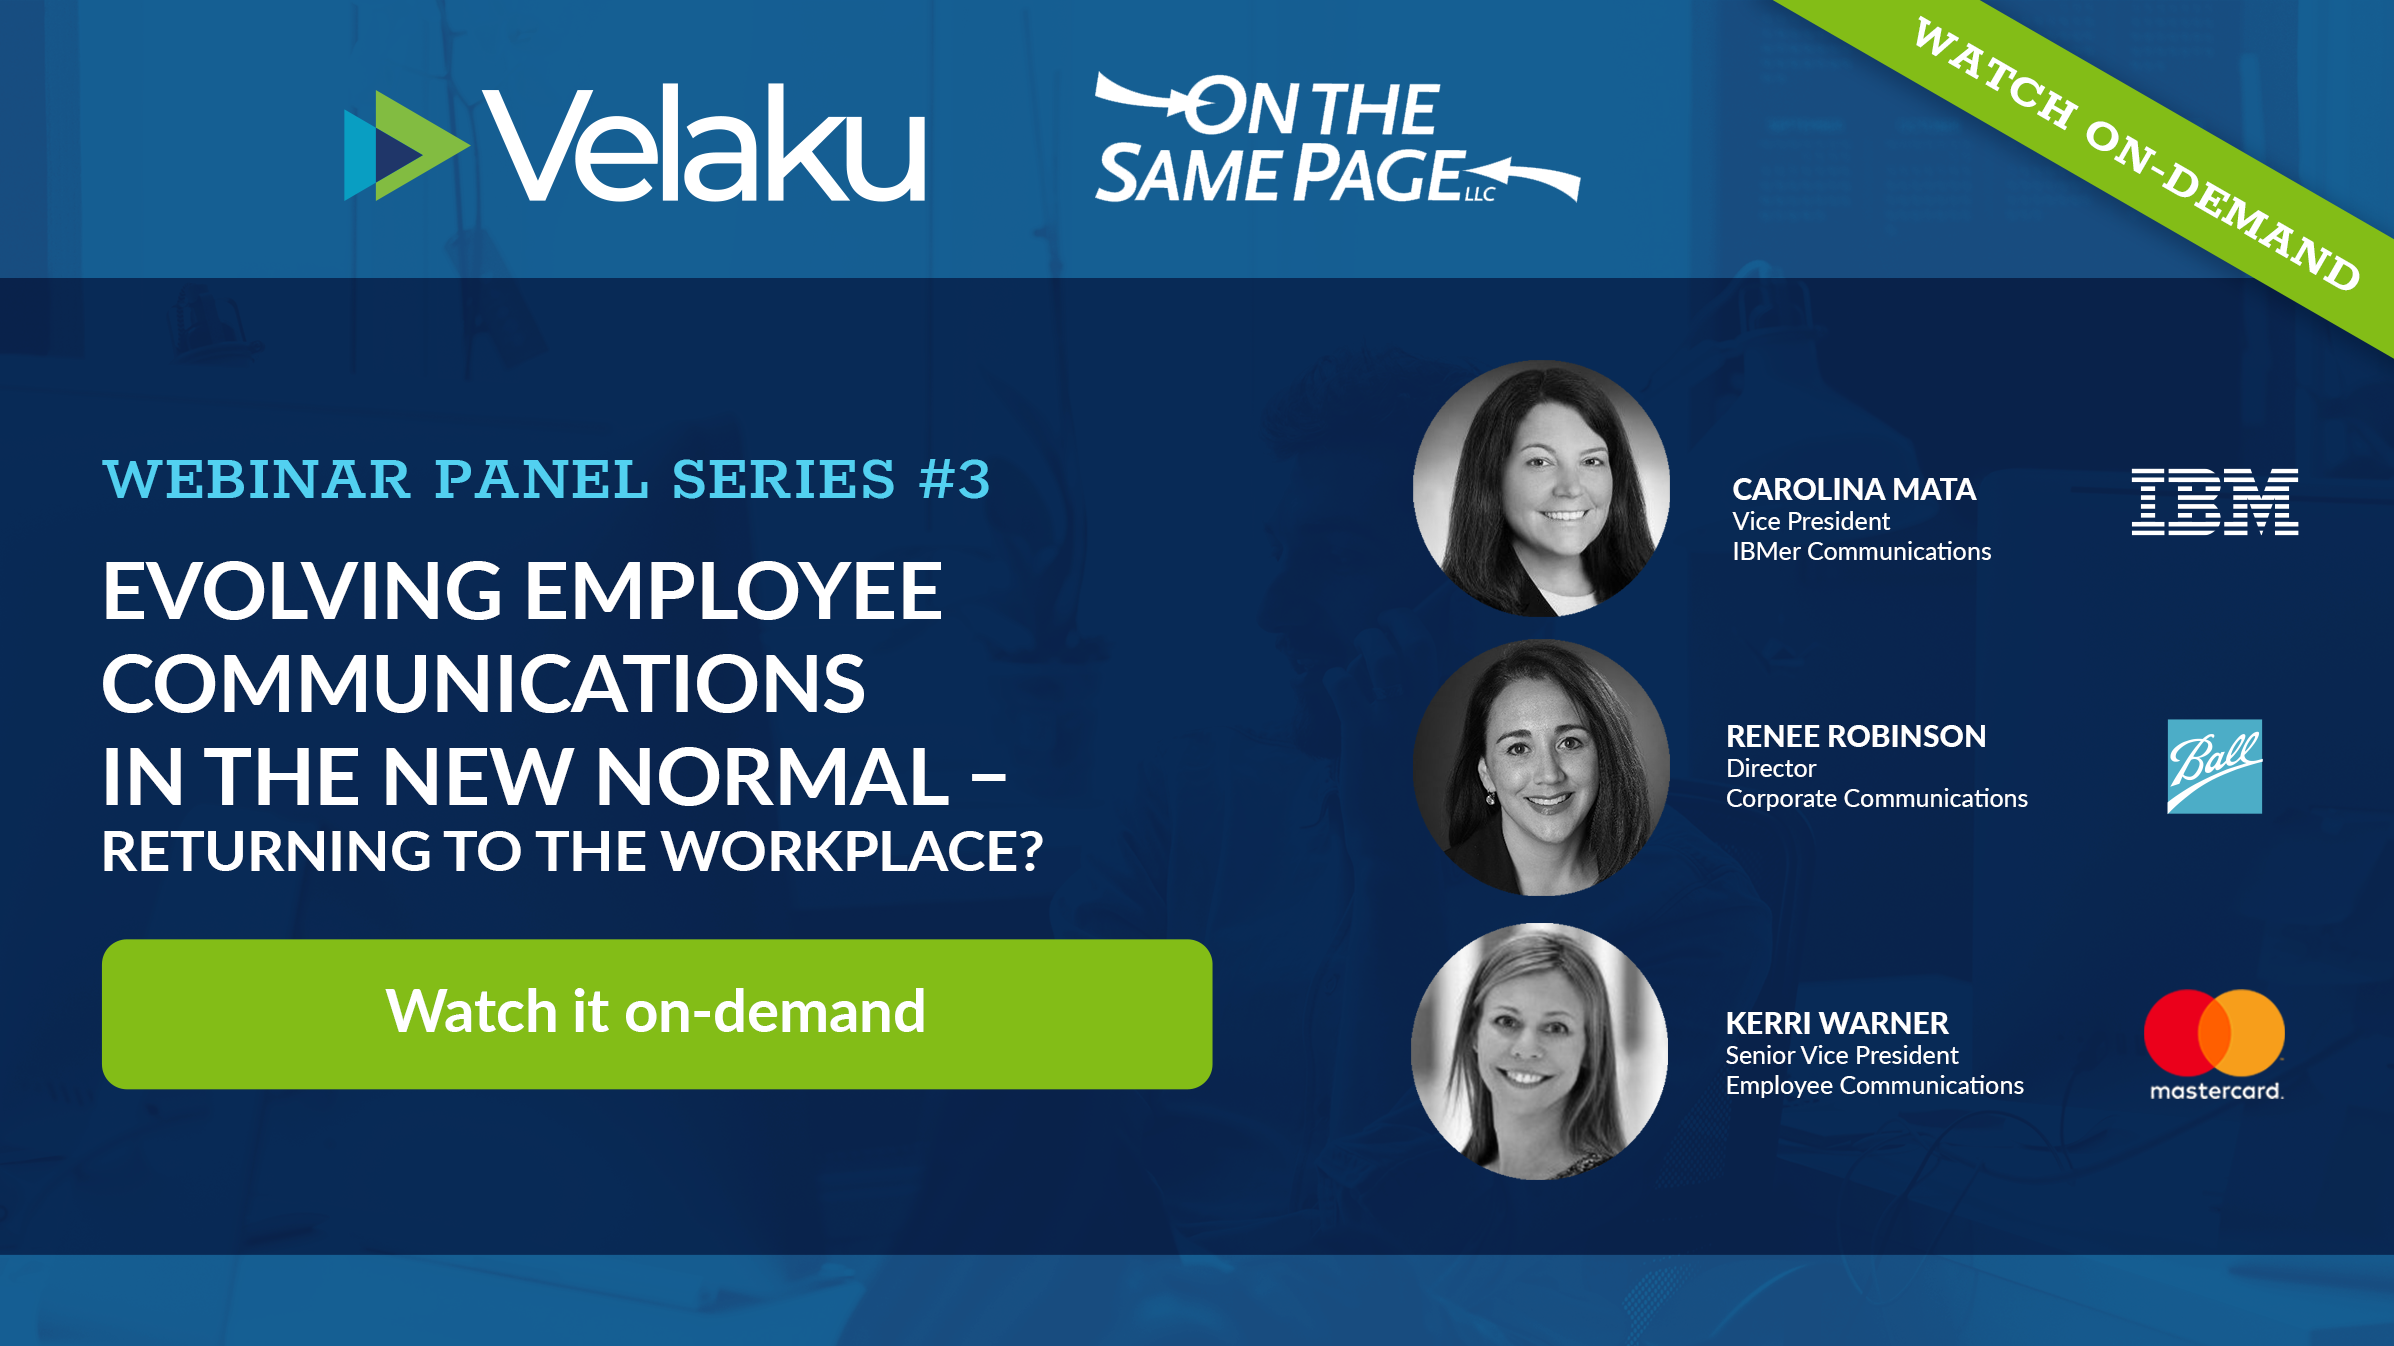 Webinar #3 Evolving Employee Communications in the New Normal - Returning to the Workplace